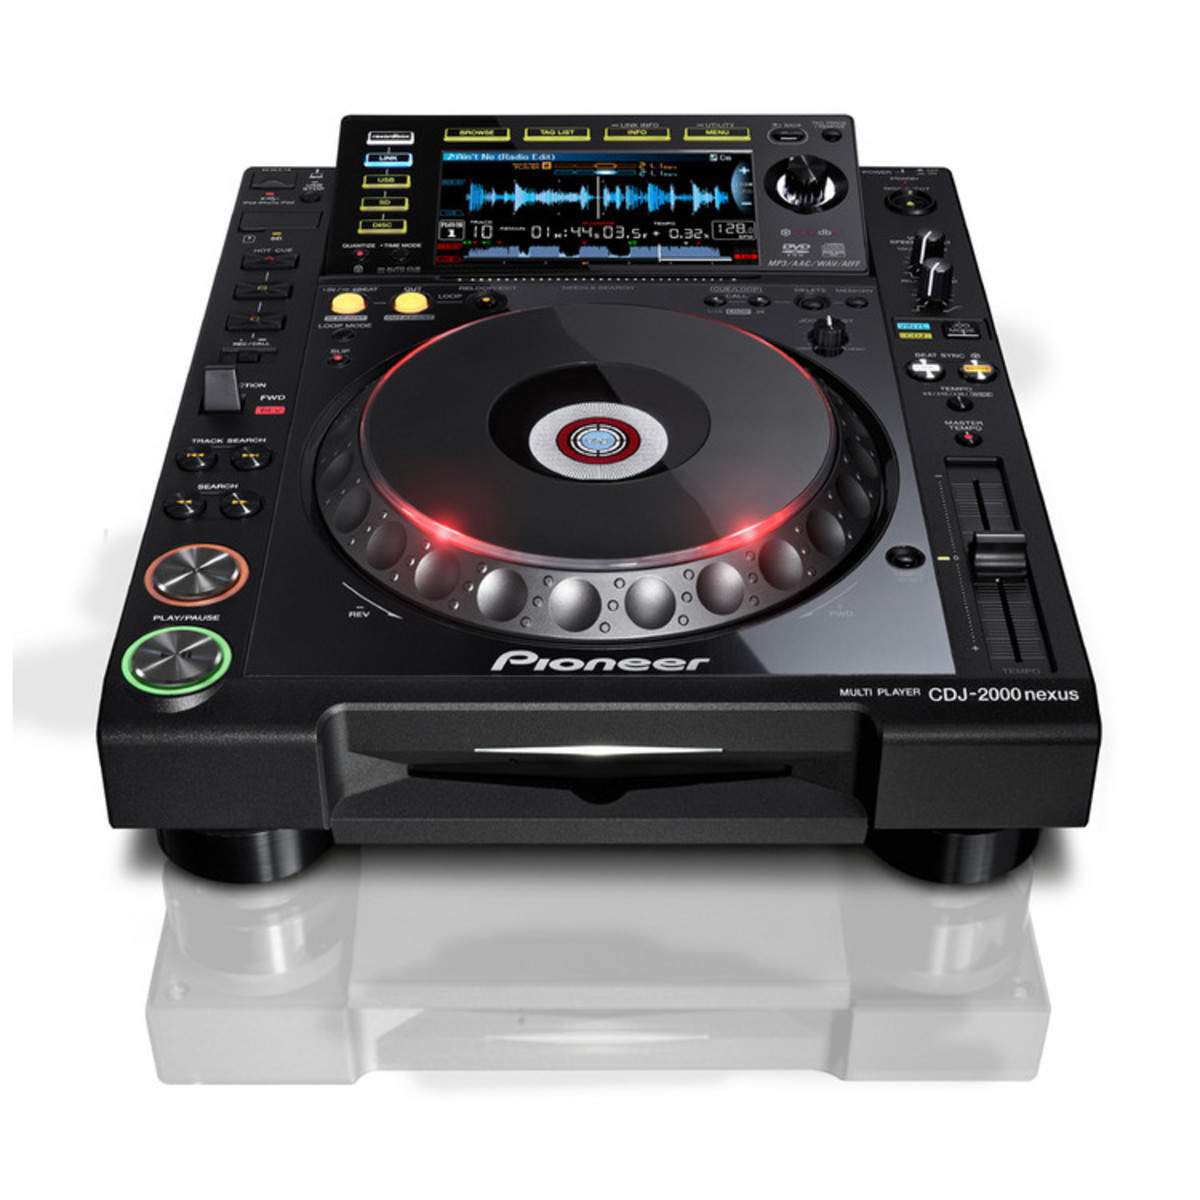 disc pioneer cdj 2000nexus multiplayer digital dj deck at. Black Bedroom Furniture Sets. Home Design Ideas